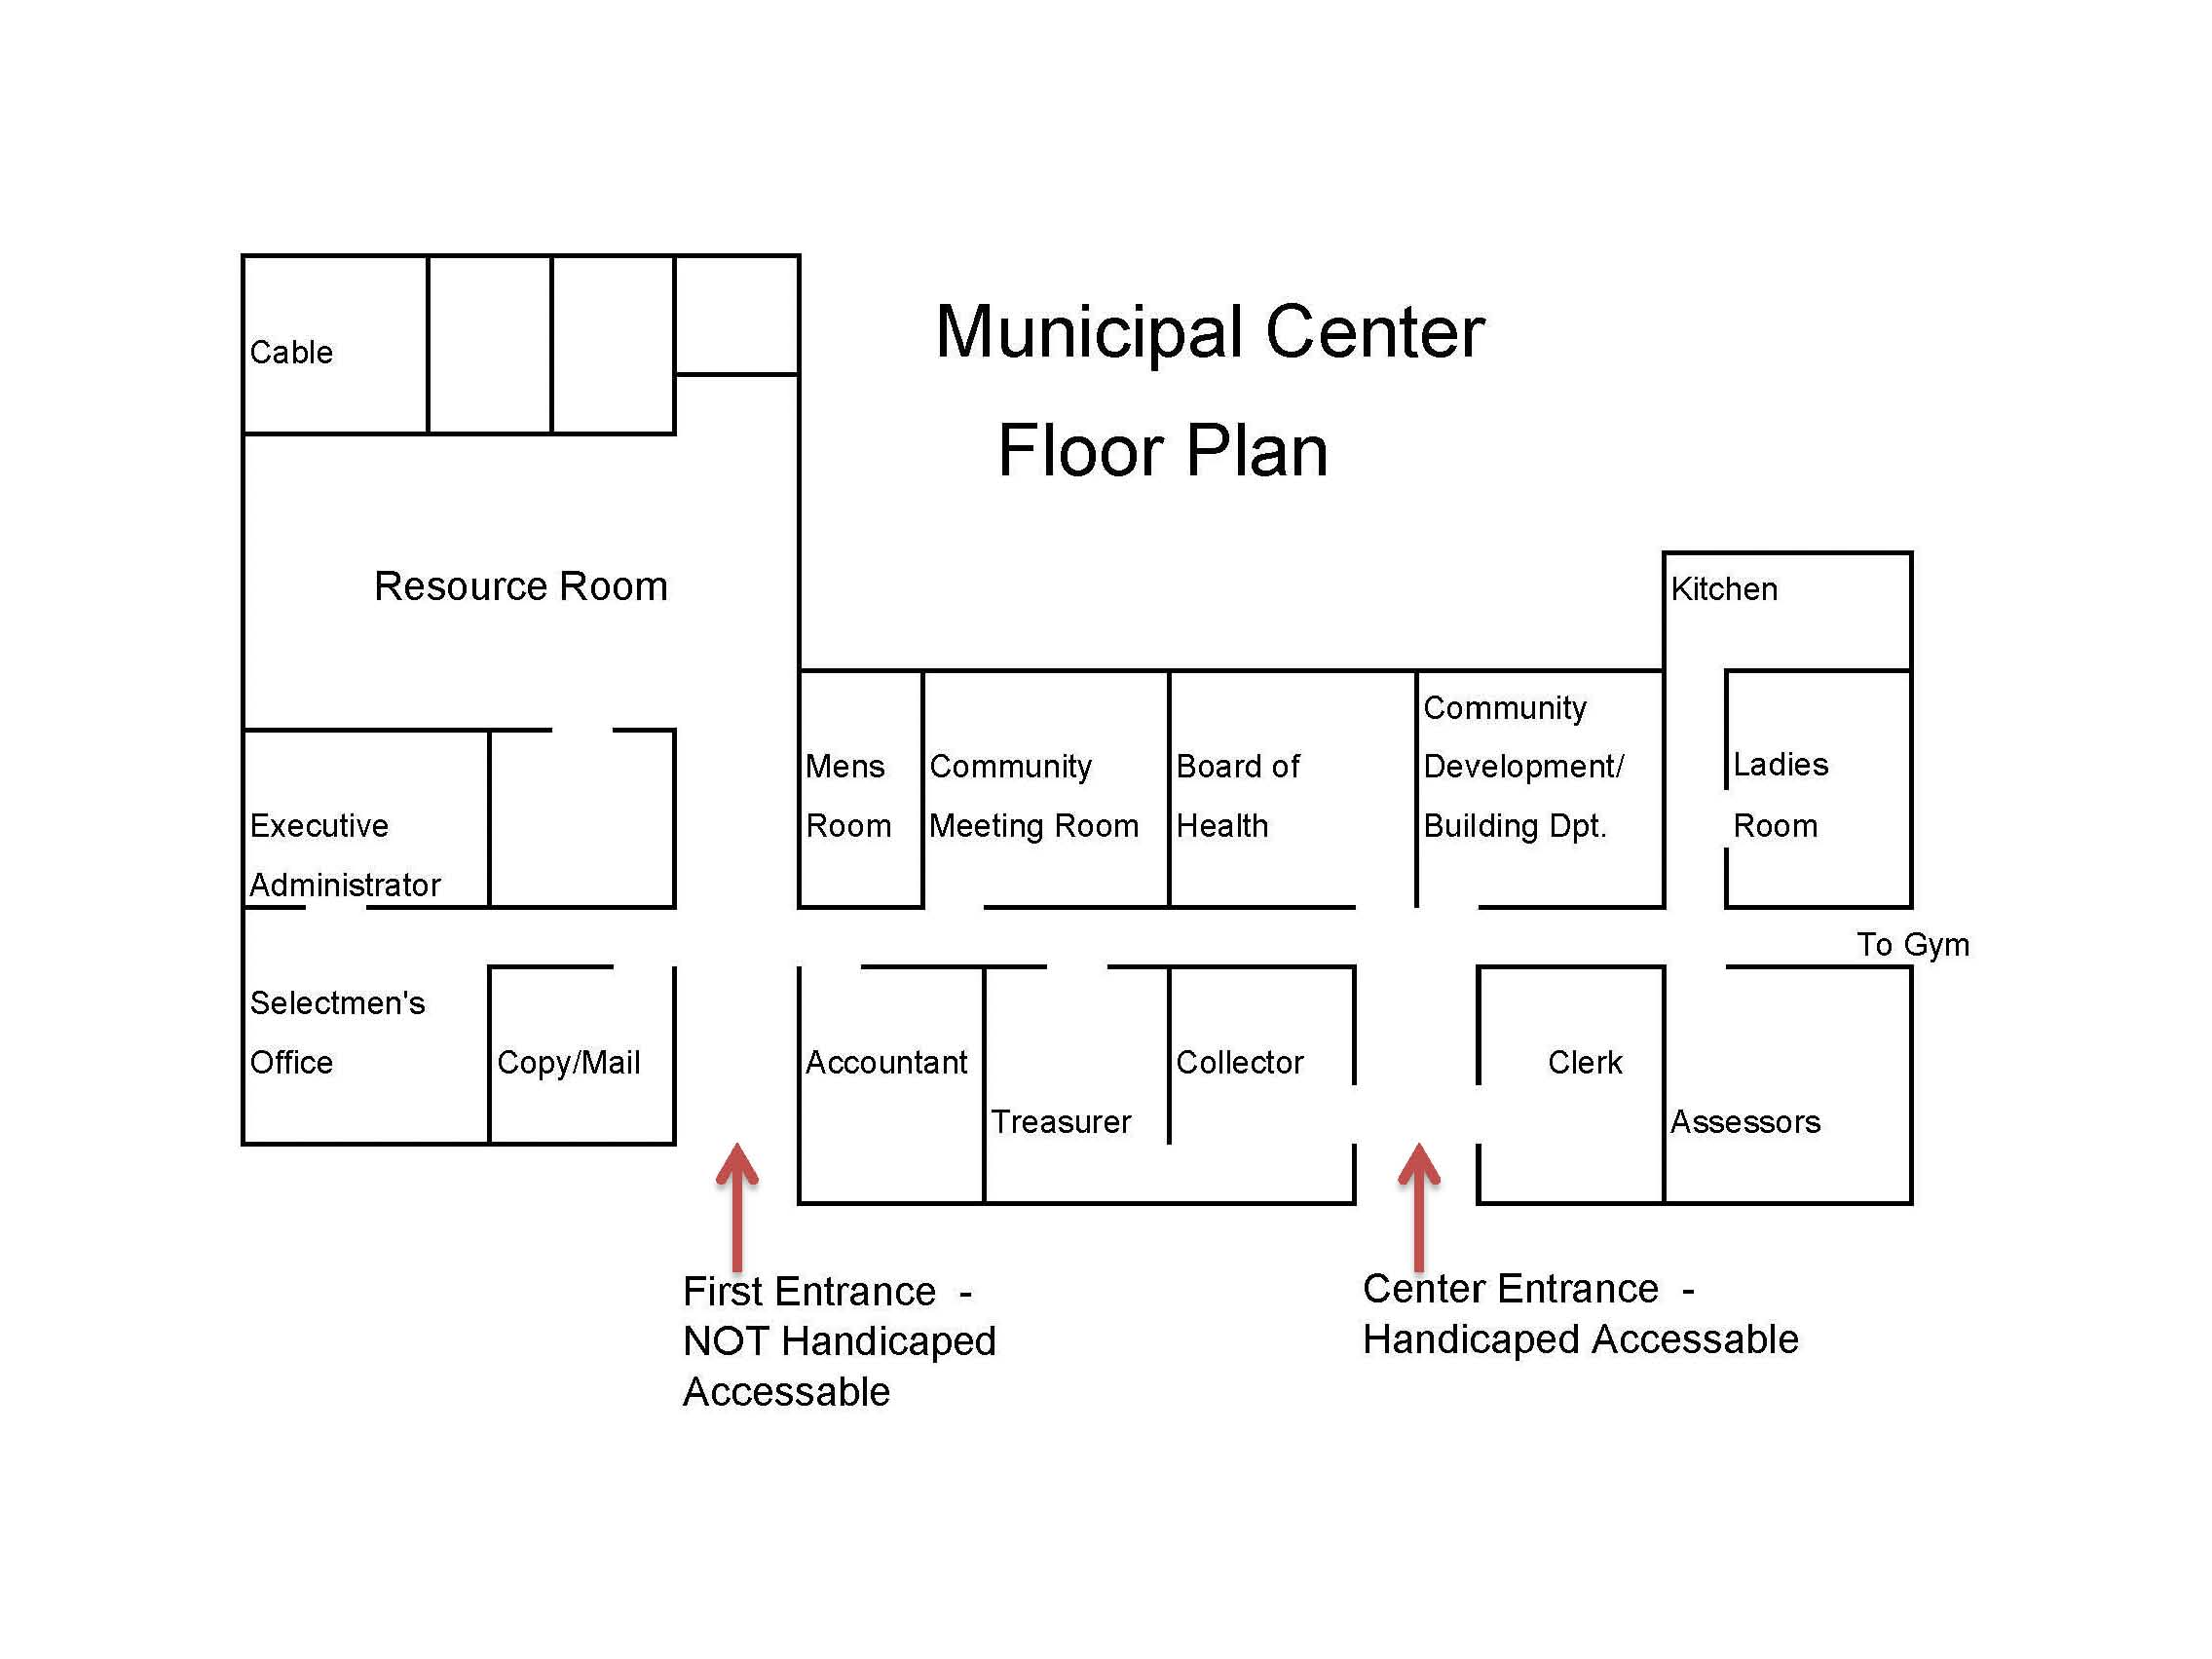 Municipal Center Floor Plan